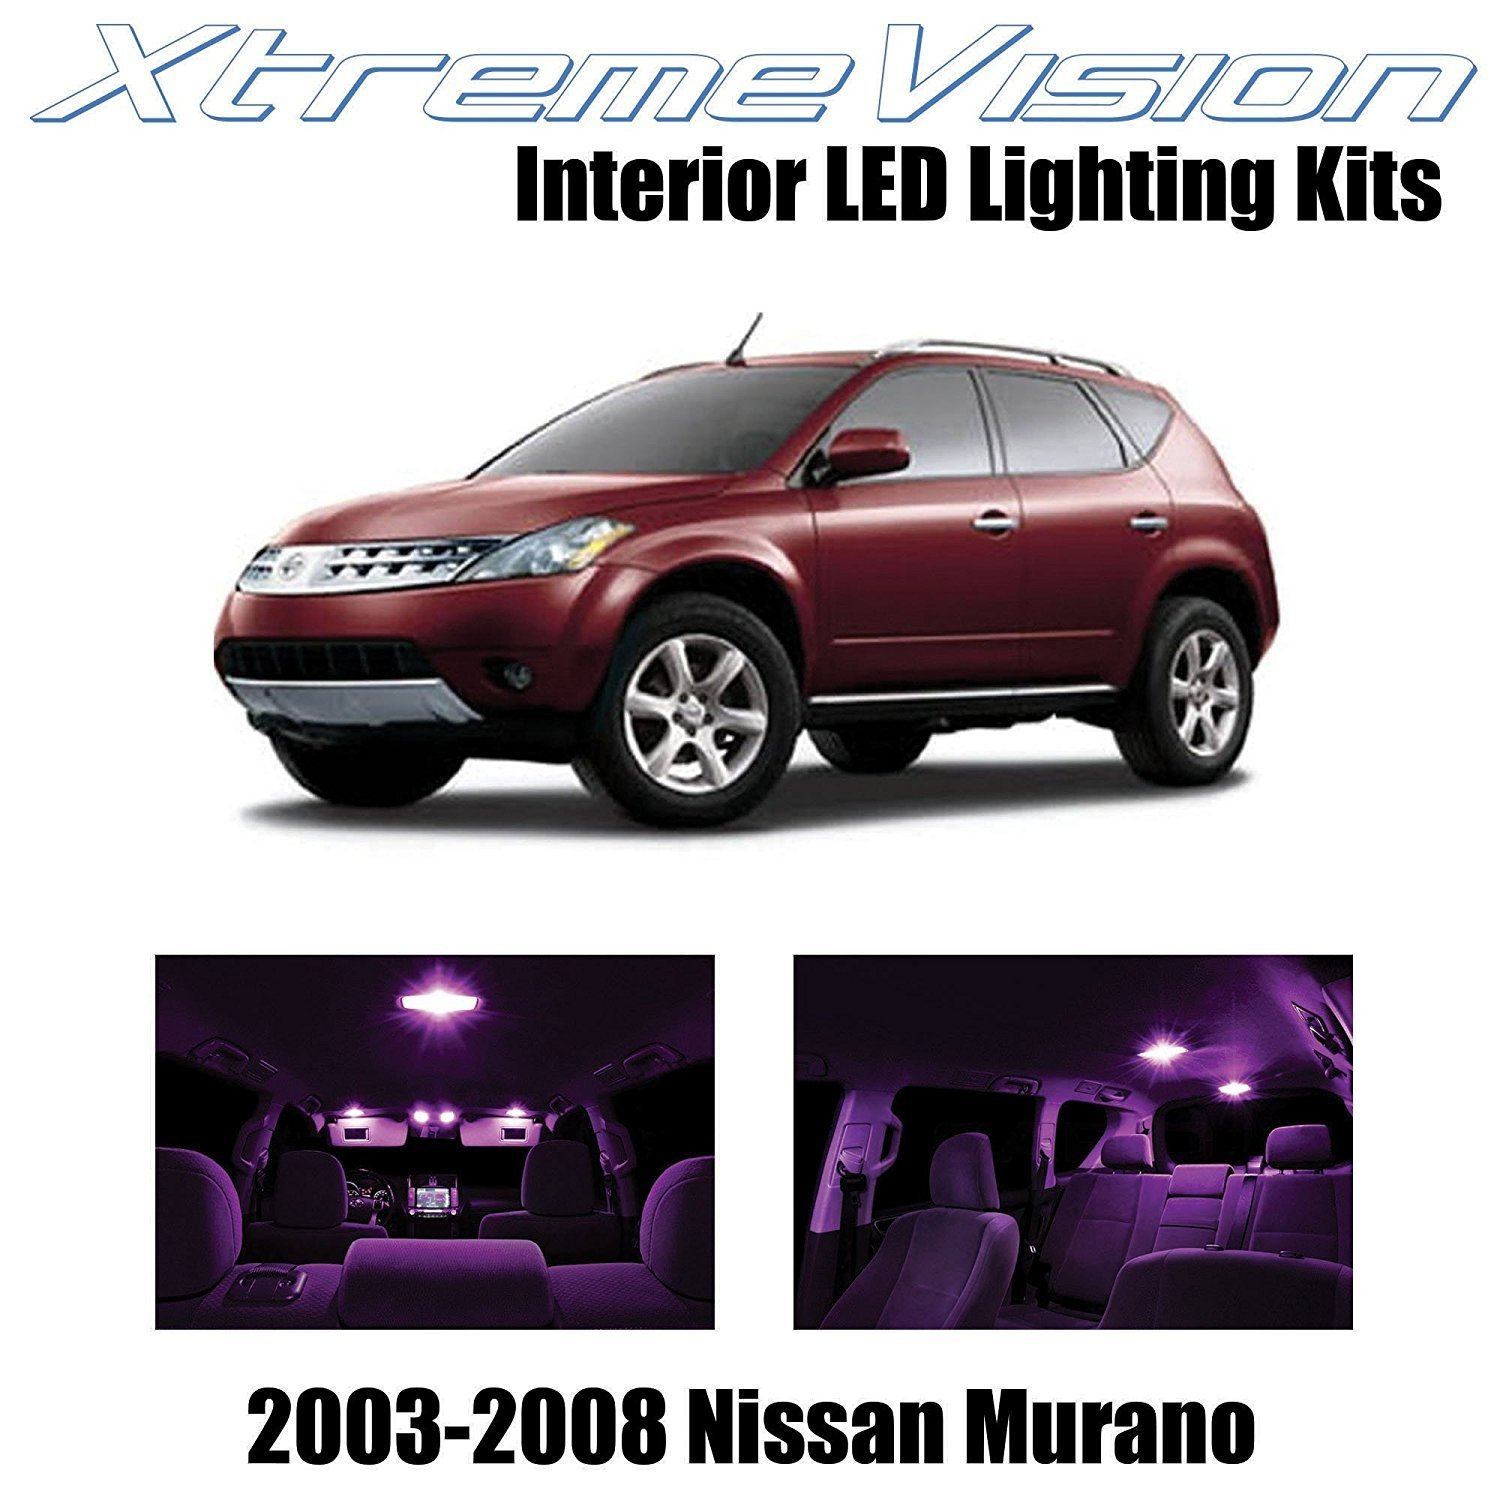 XtremeVision LED for Nissan Murano 2003-2008 (9 Pieces) Pink Premium Interior LED Kit Package + Installation Tool